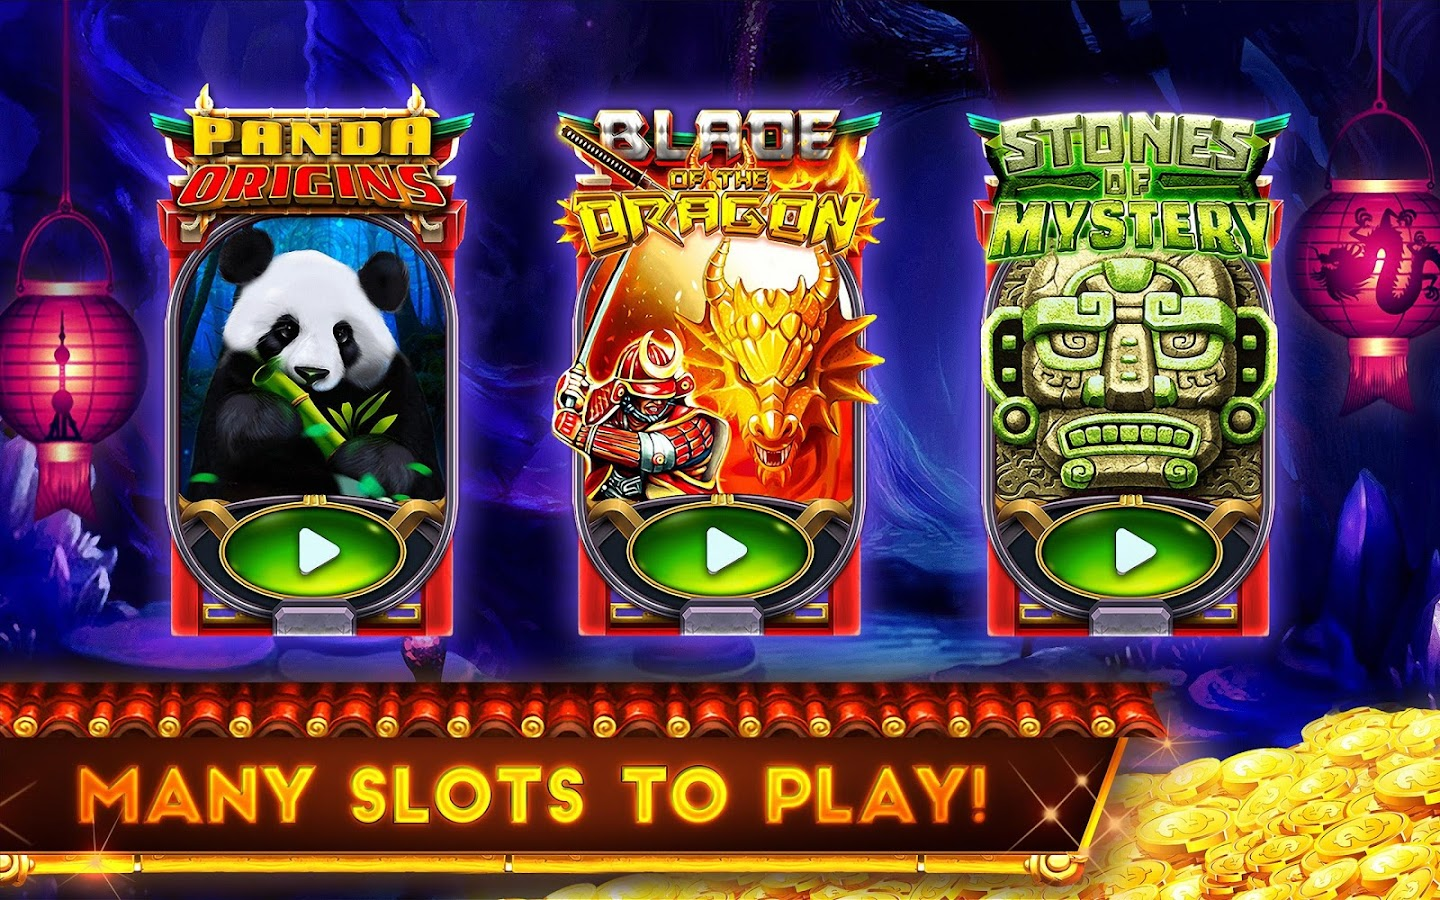 Prosperity Dragon Slot Machine - Play Free Casino Slot Games